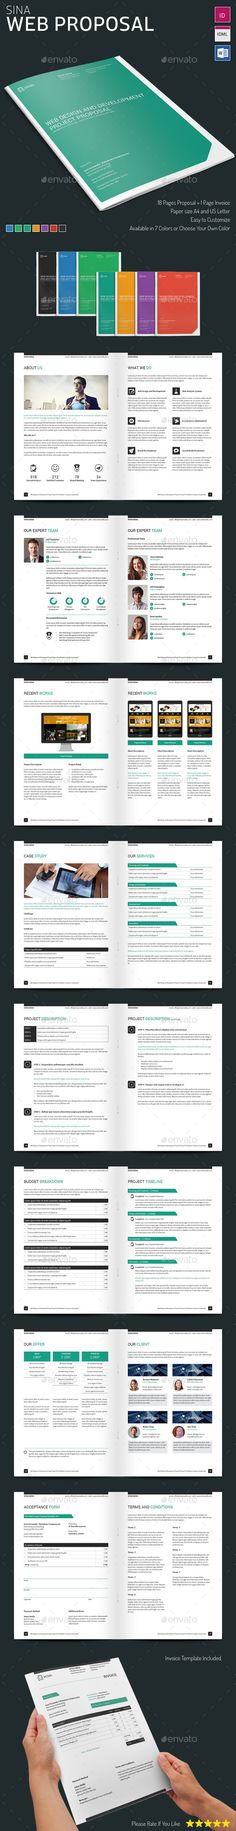 Whole Corporate Identity Proposal+ Invoice+ Letter Proposal - proposal templates